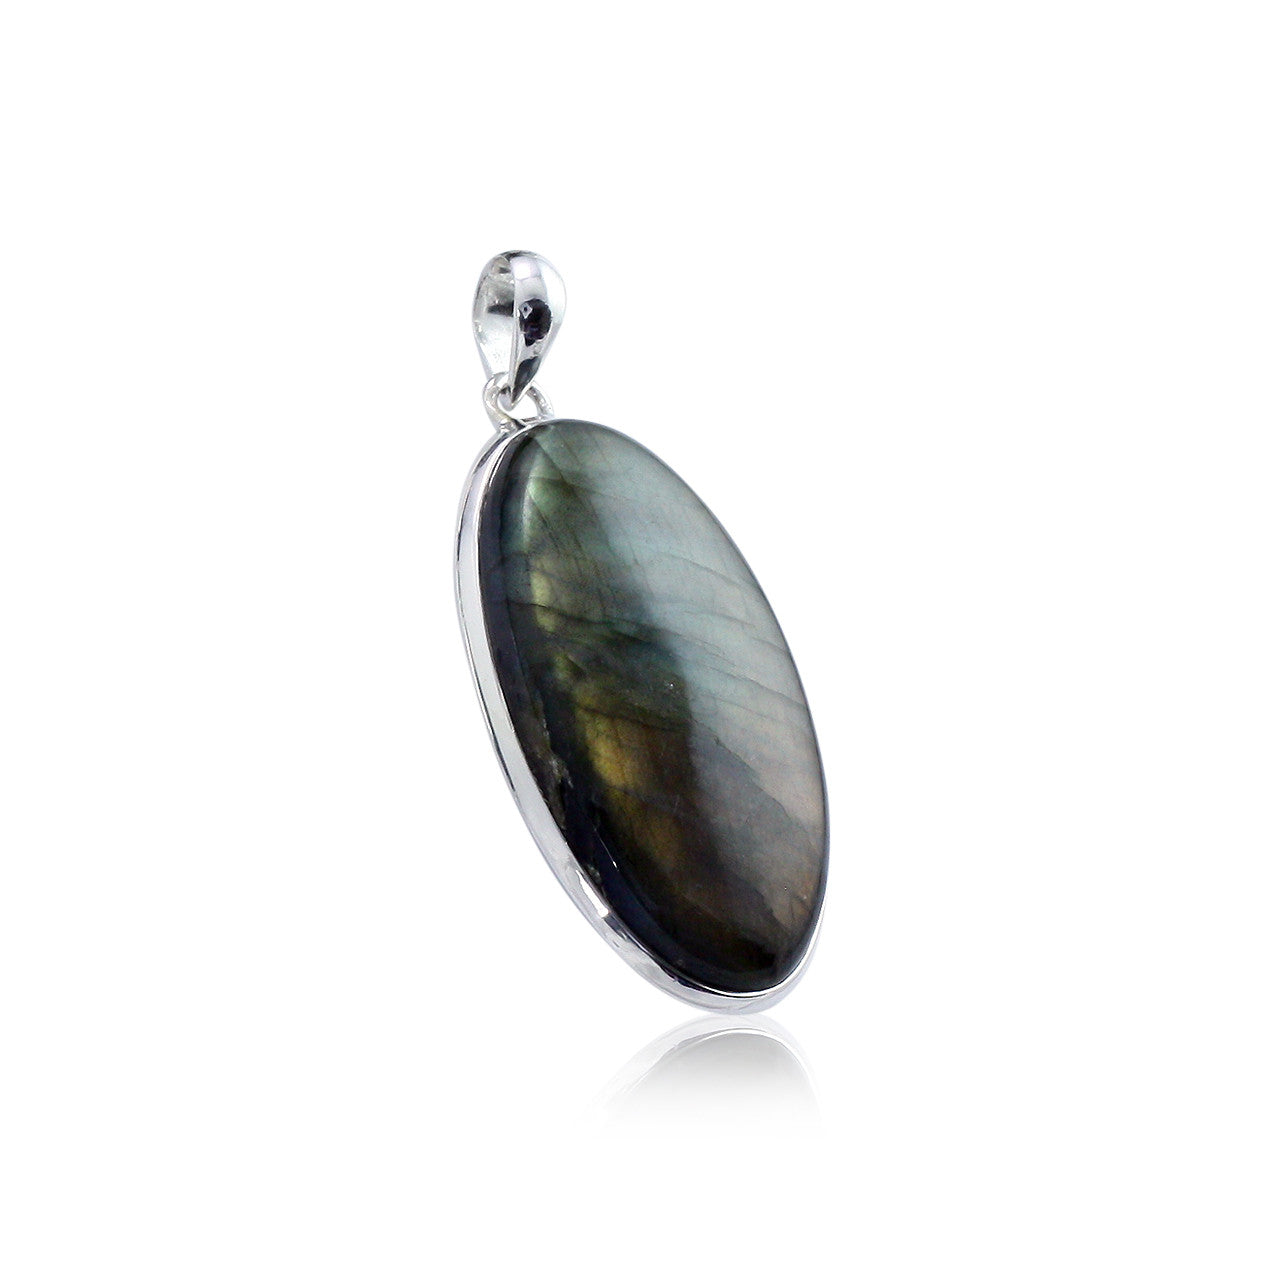 pendants h collections a kind labradorite ptpd free one pendant himalayan of form gems products